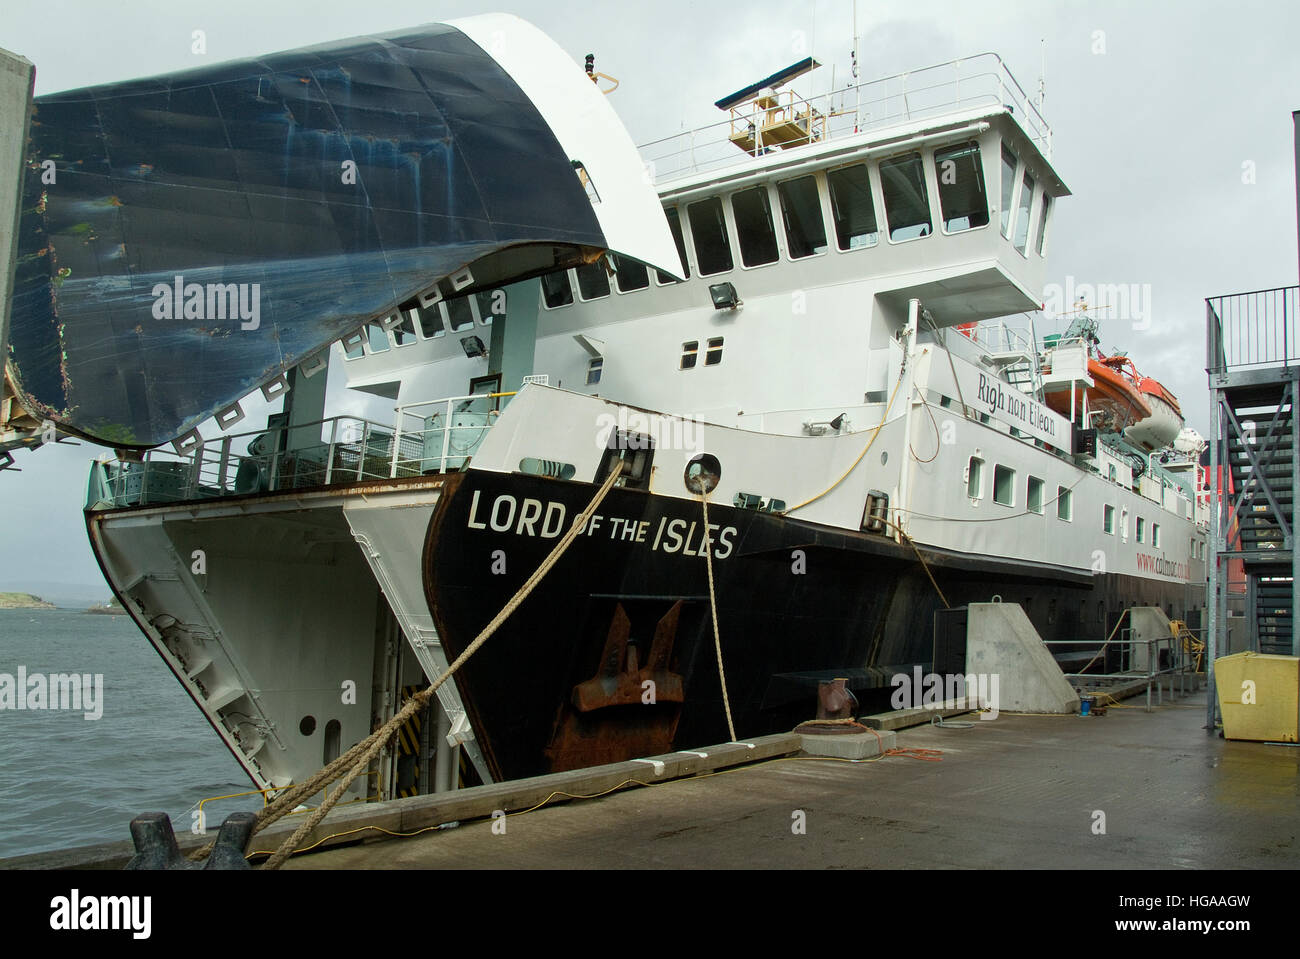 Cal-Mac ferry Lord of the Isles in Oban dock. - Stock Image